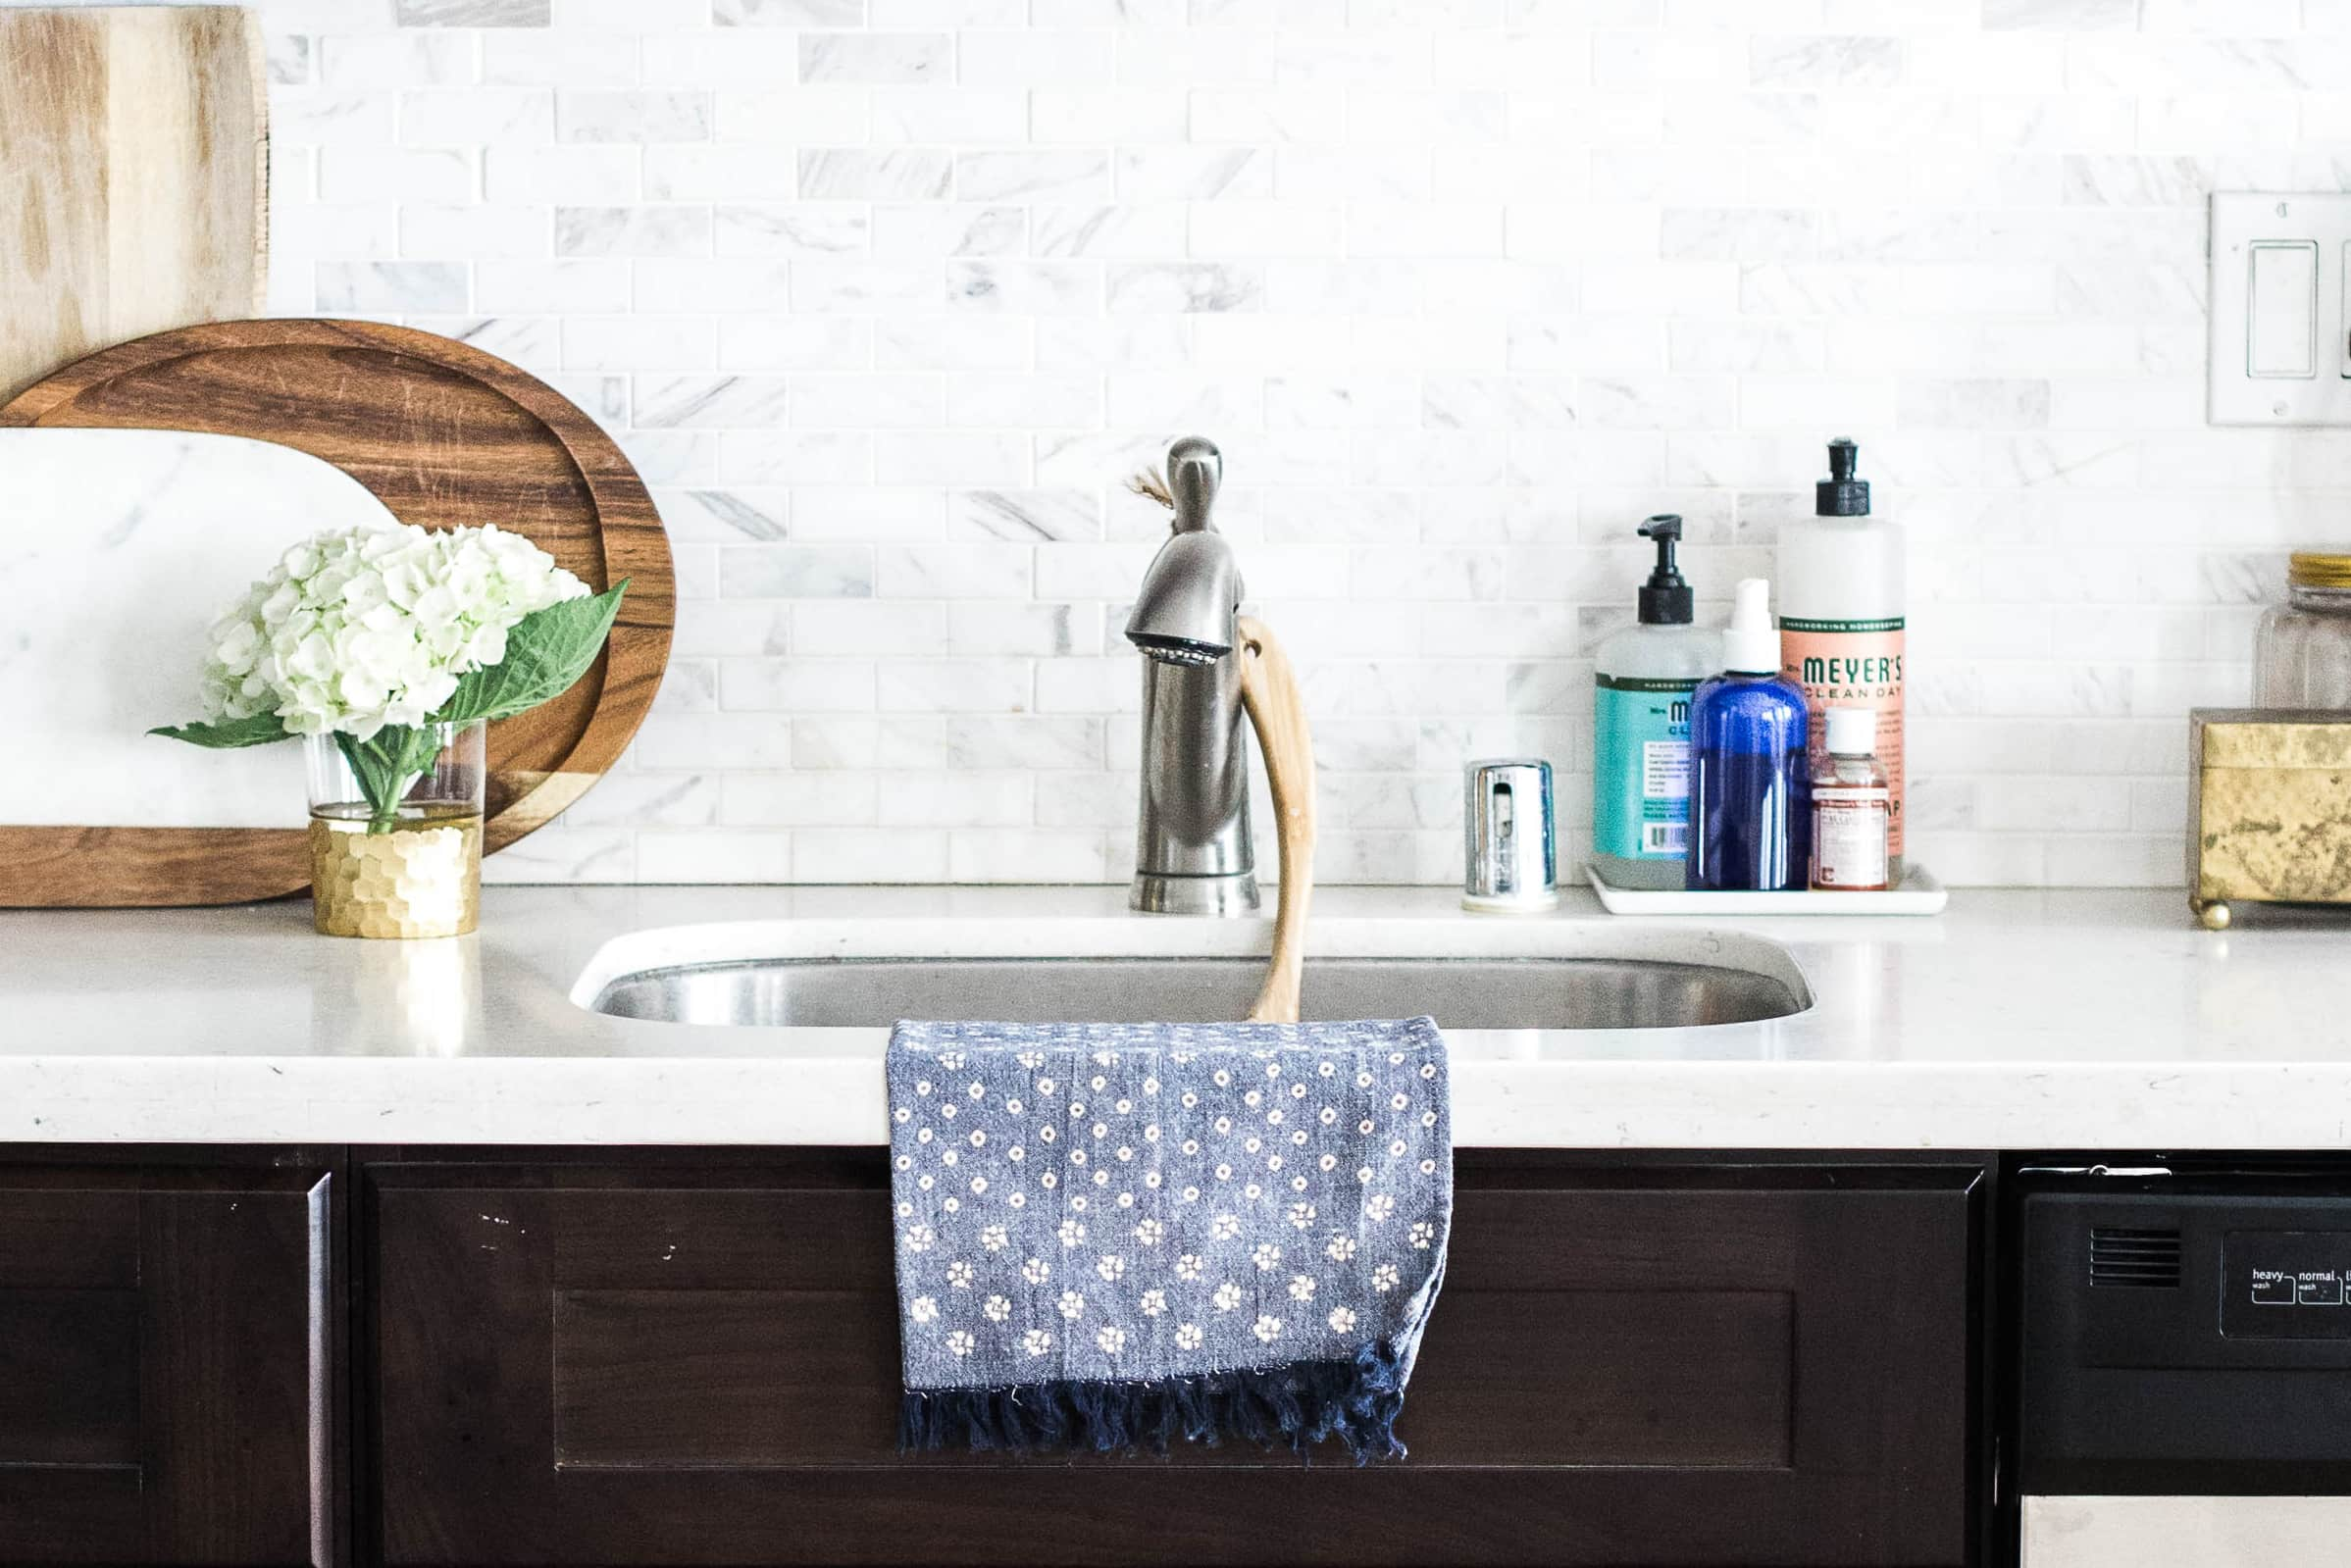 Sink with cloth and cleaning supplies